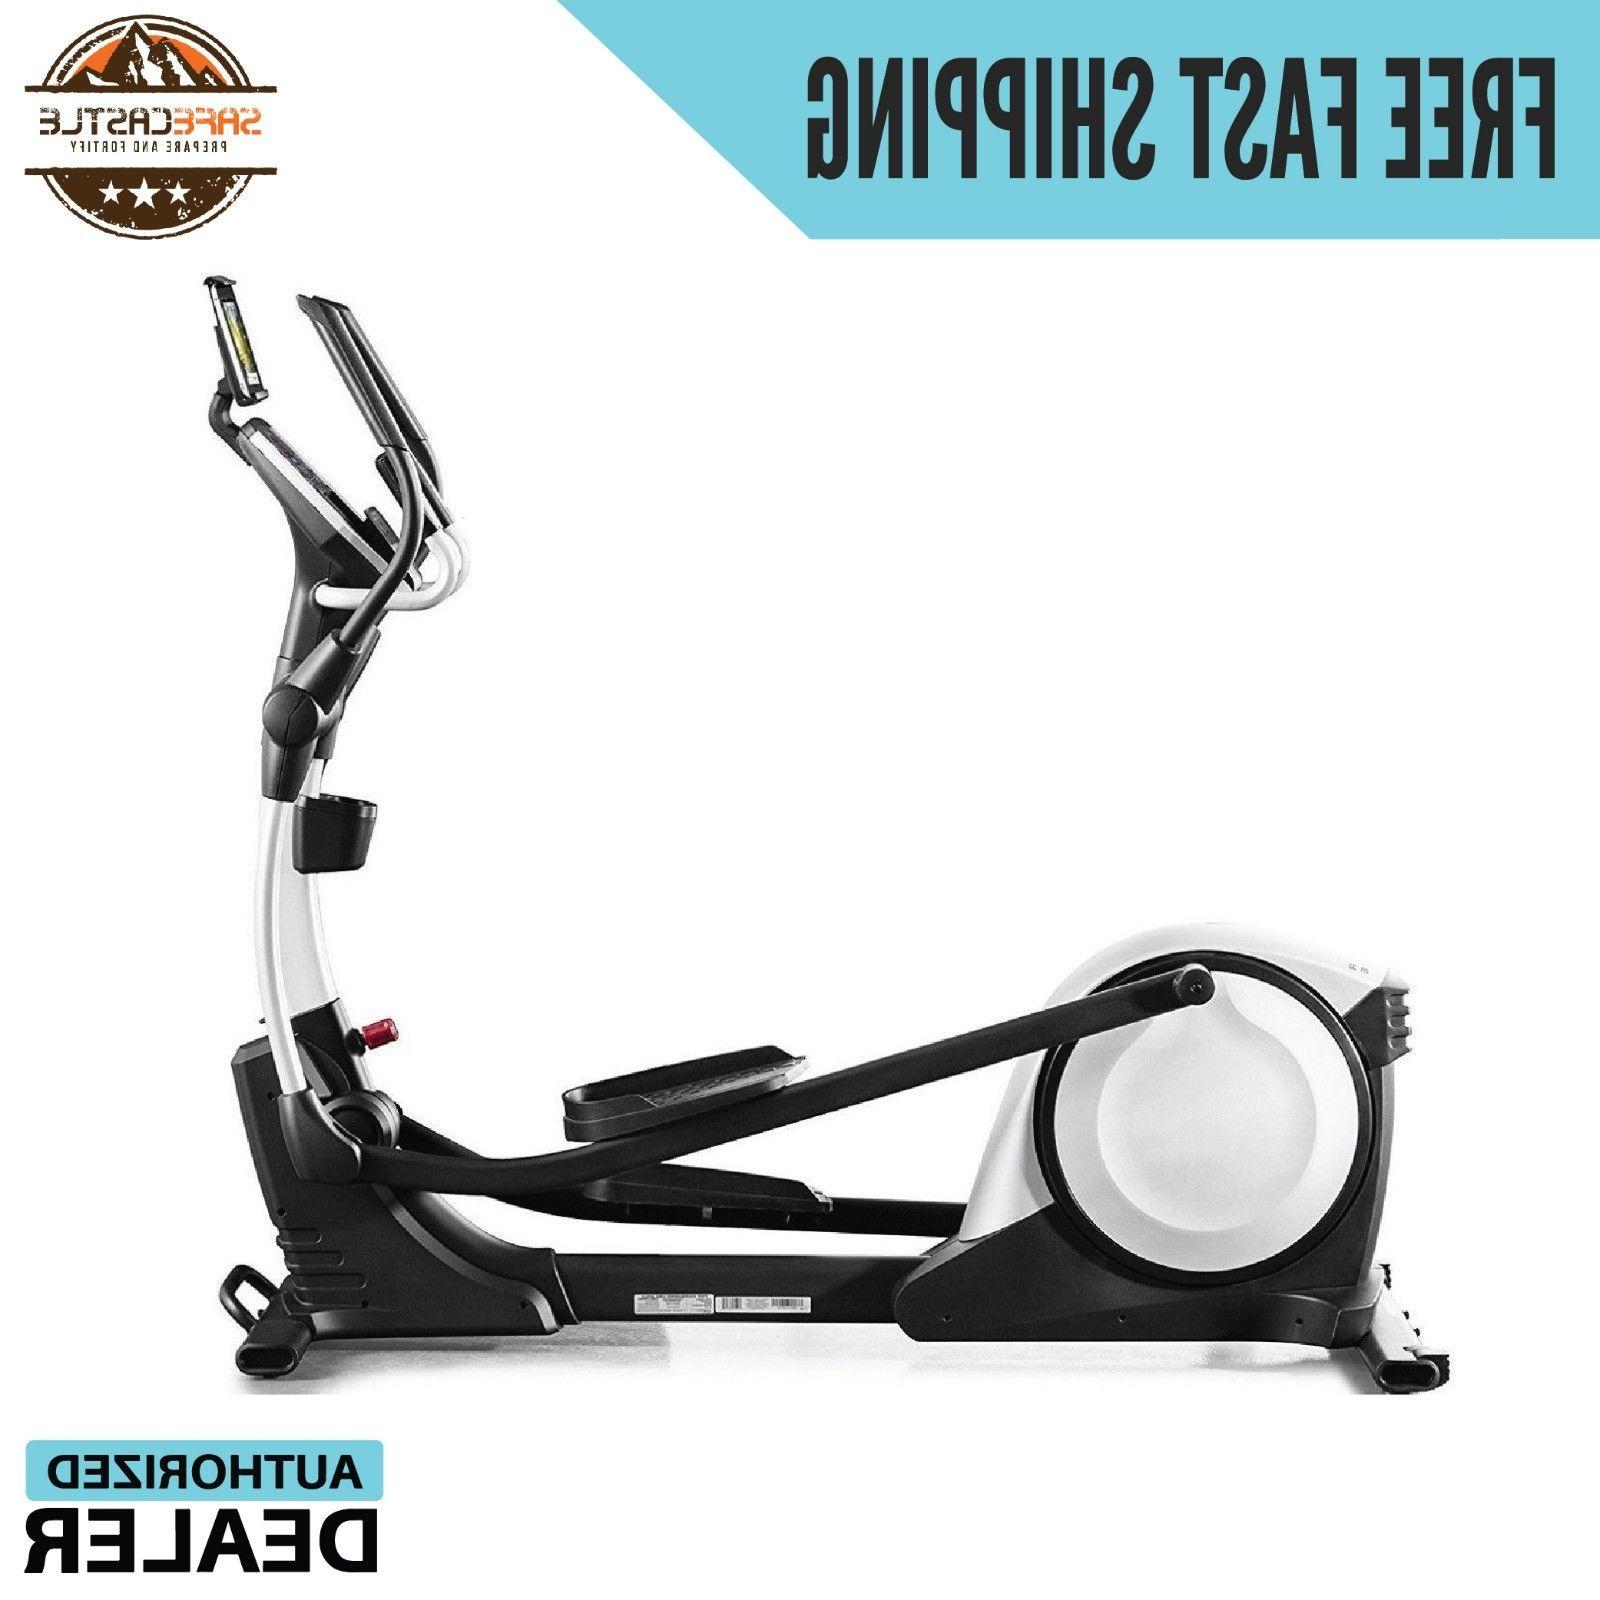 new proform smart strider 495 cse elliptical